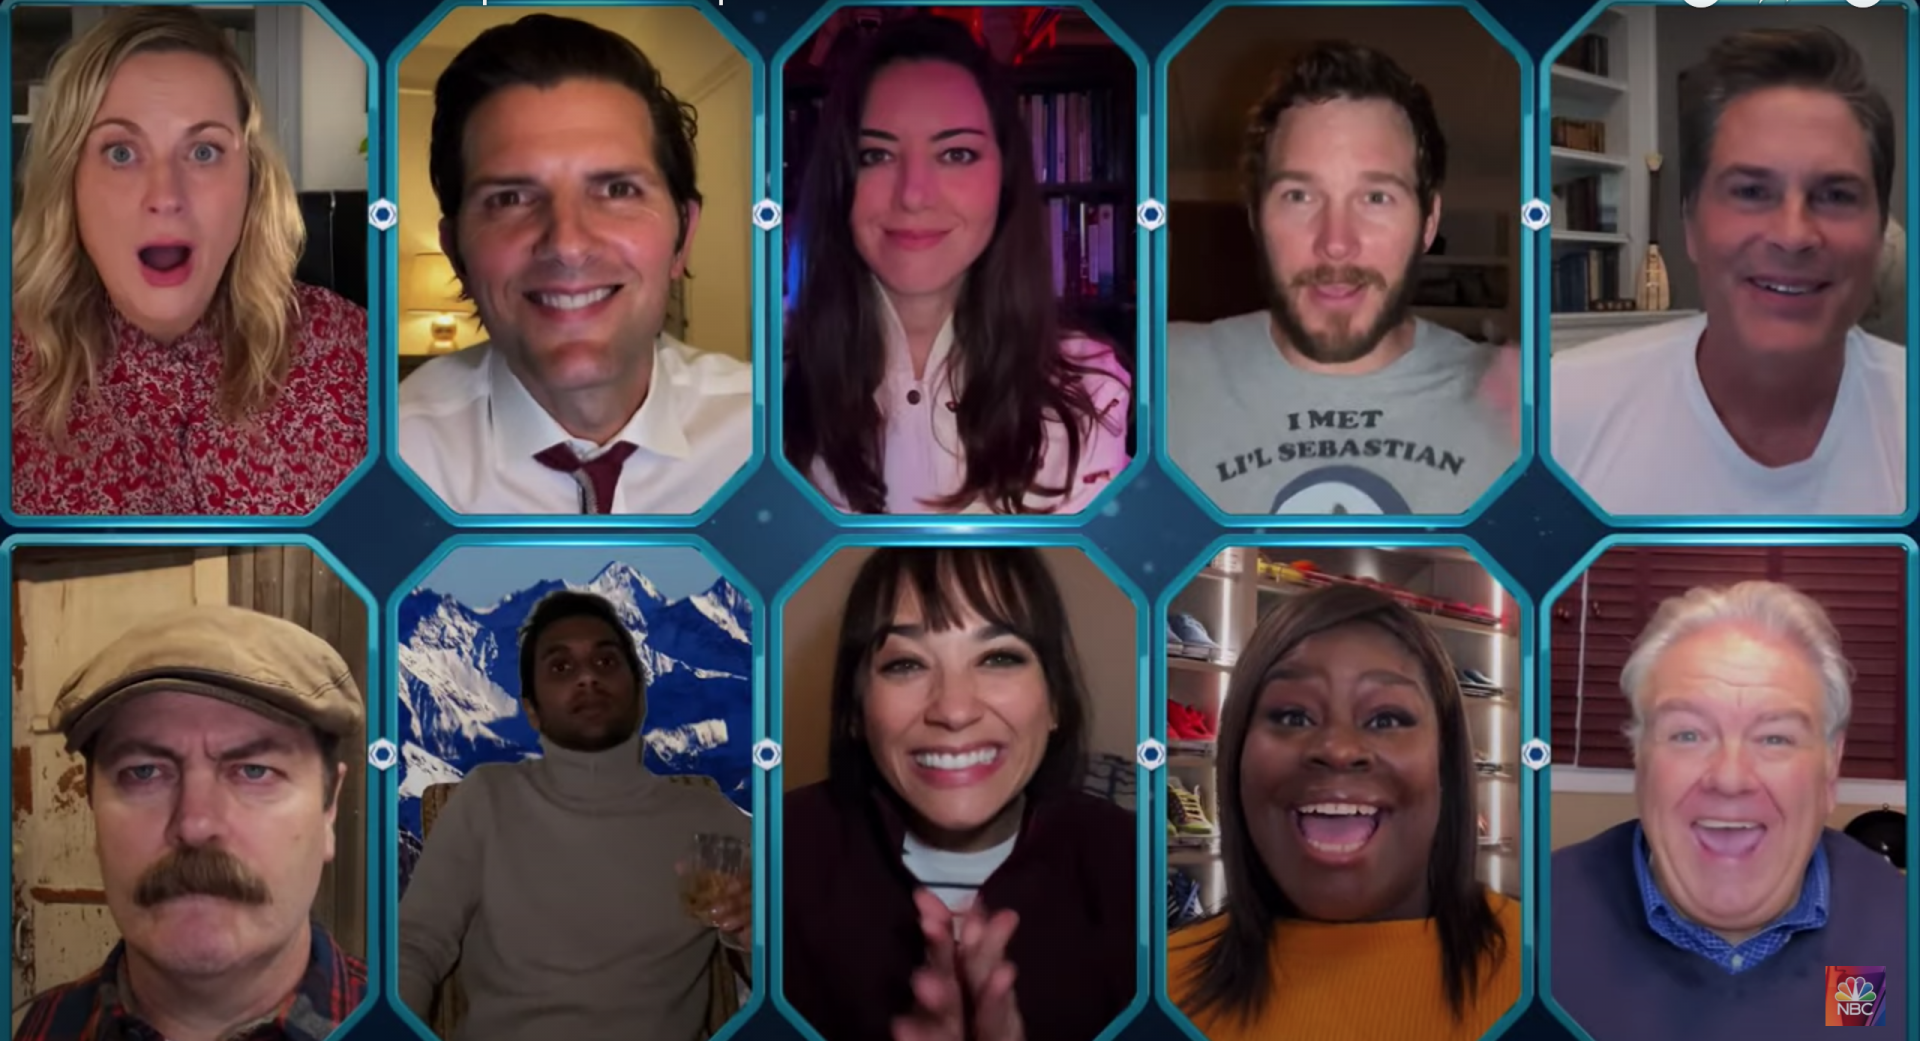 A video call between Parks and Rec characters Leslie, Ben, April, Andy, Chris, Ron, Tom, Ann, Donna, and Jerry/Garry.